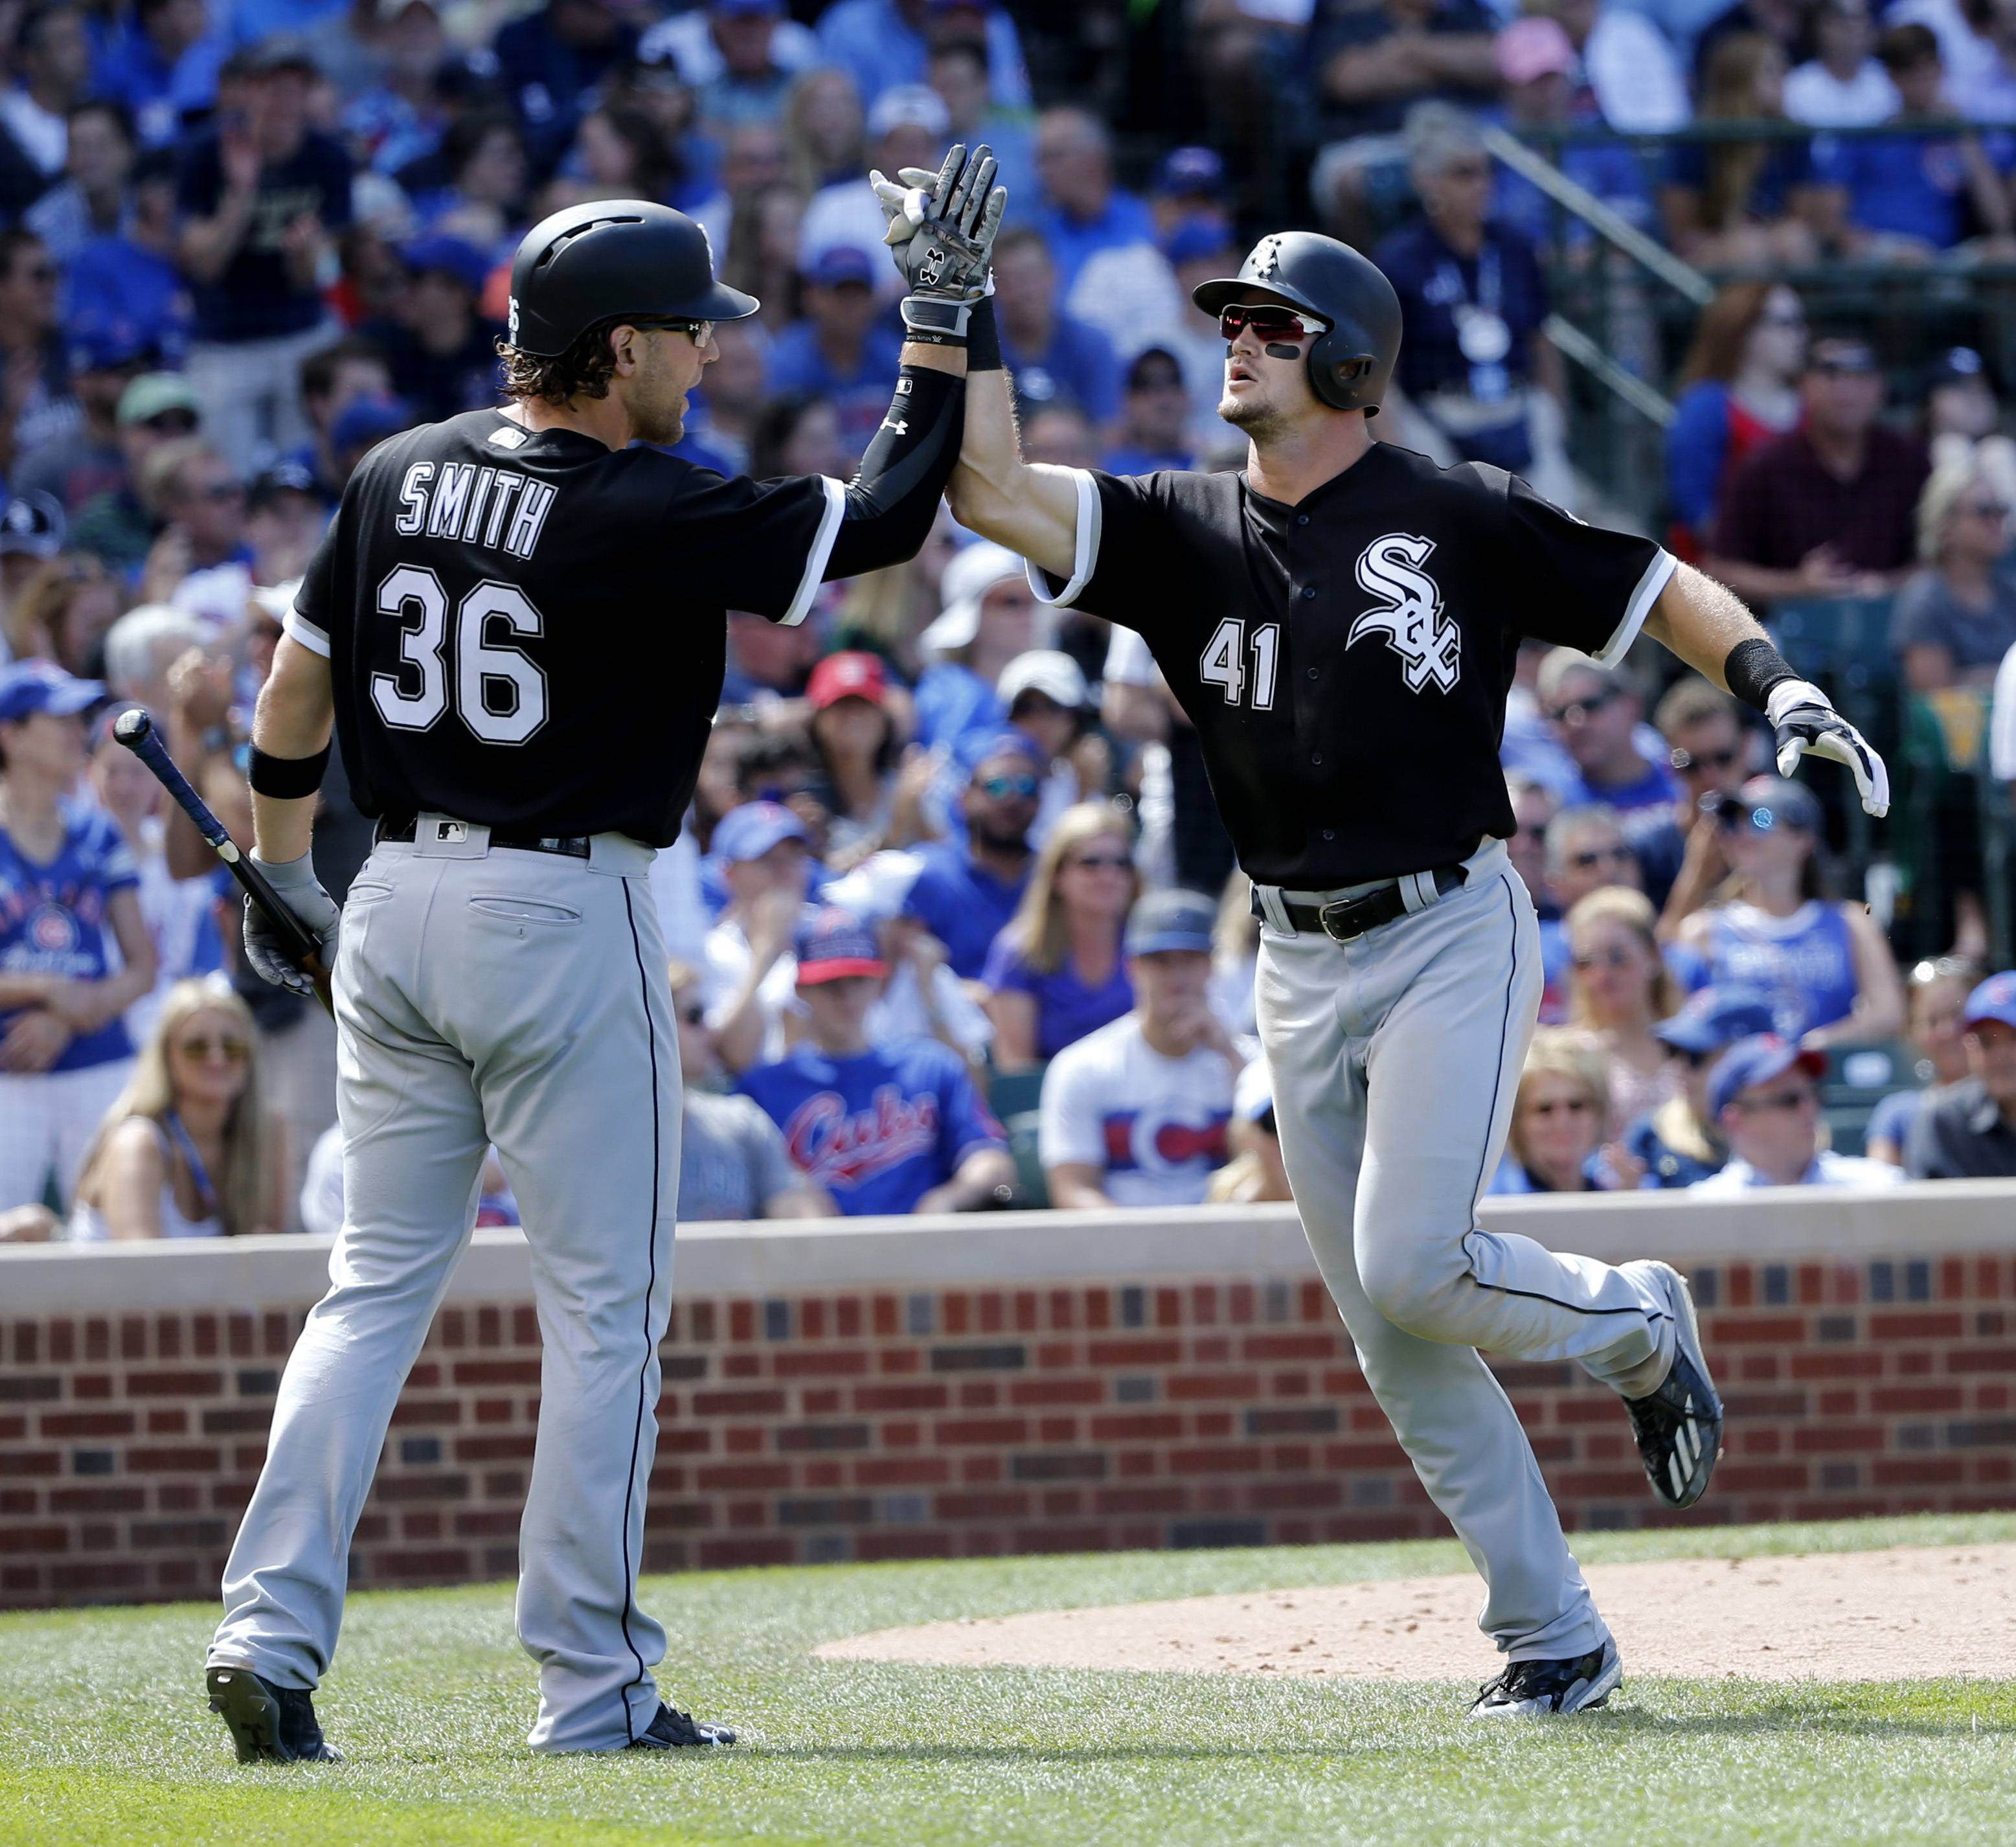 Adam Engel (41) had a pair of hits, including a solo home run, in Monday's White Sox victory over the Chicago Cubs. He'll bat eighth in today's Crosstown Cup game at Wrigley Field.